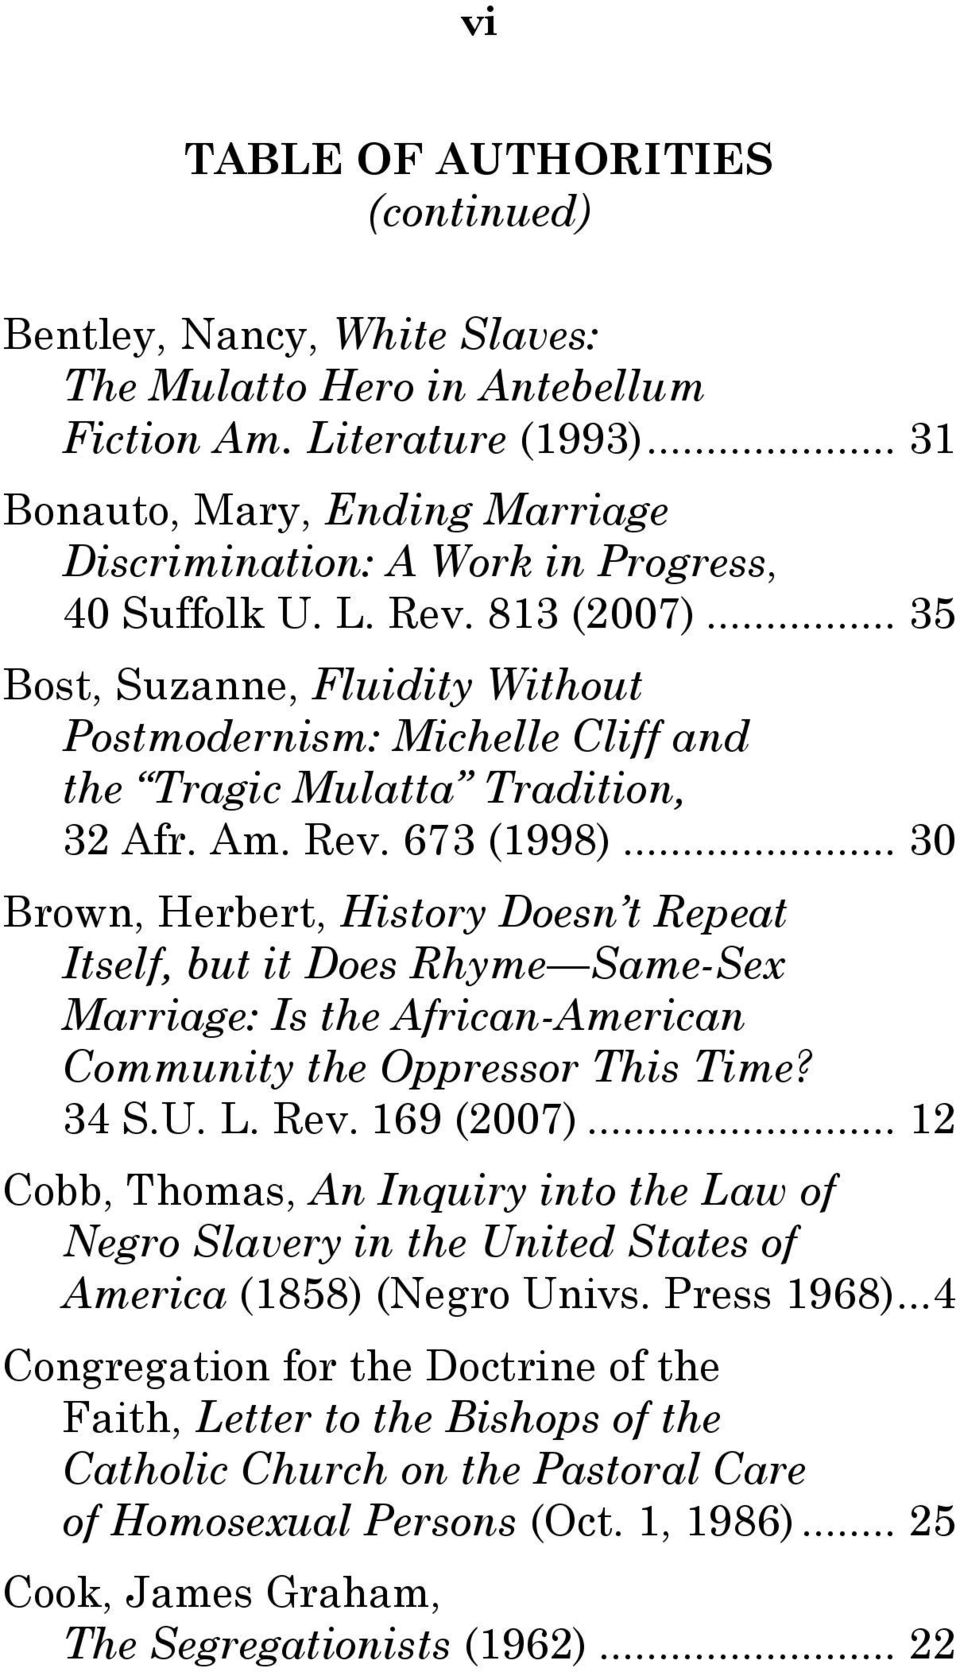 .. 35 Bost, Suzanne, Fluidity Without Postmodernism: Michelle Cliff and the Tragic Mulatta Tradition, 32 Afr. Am. Rev. 673 (1998).